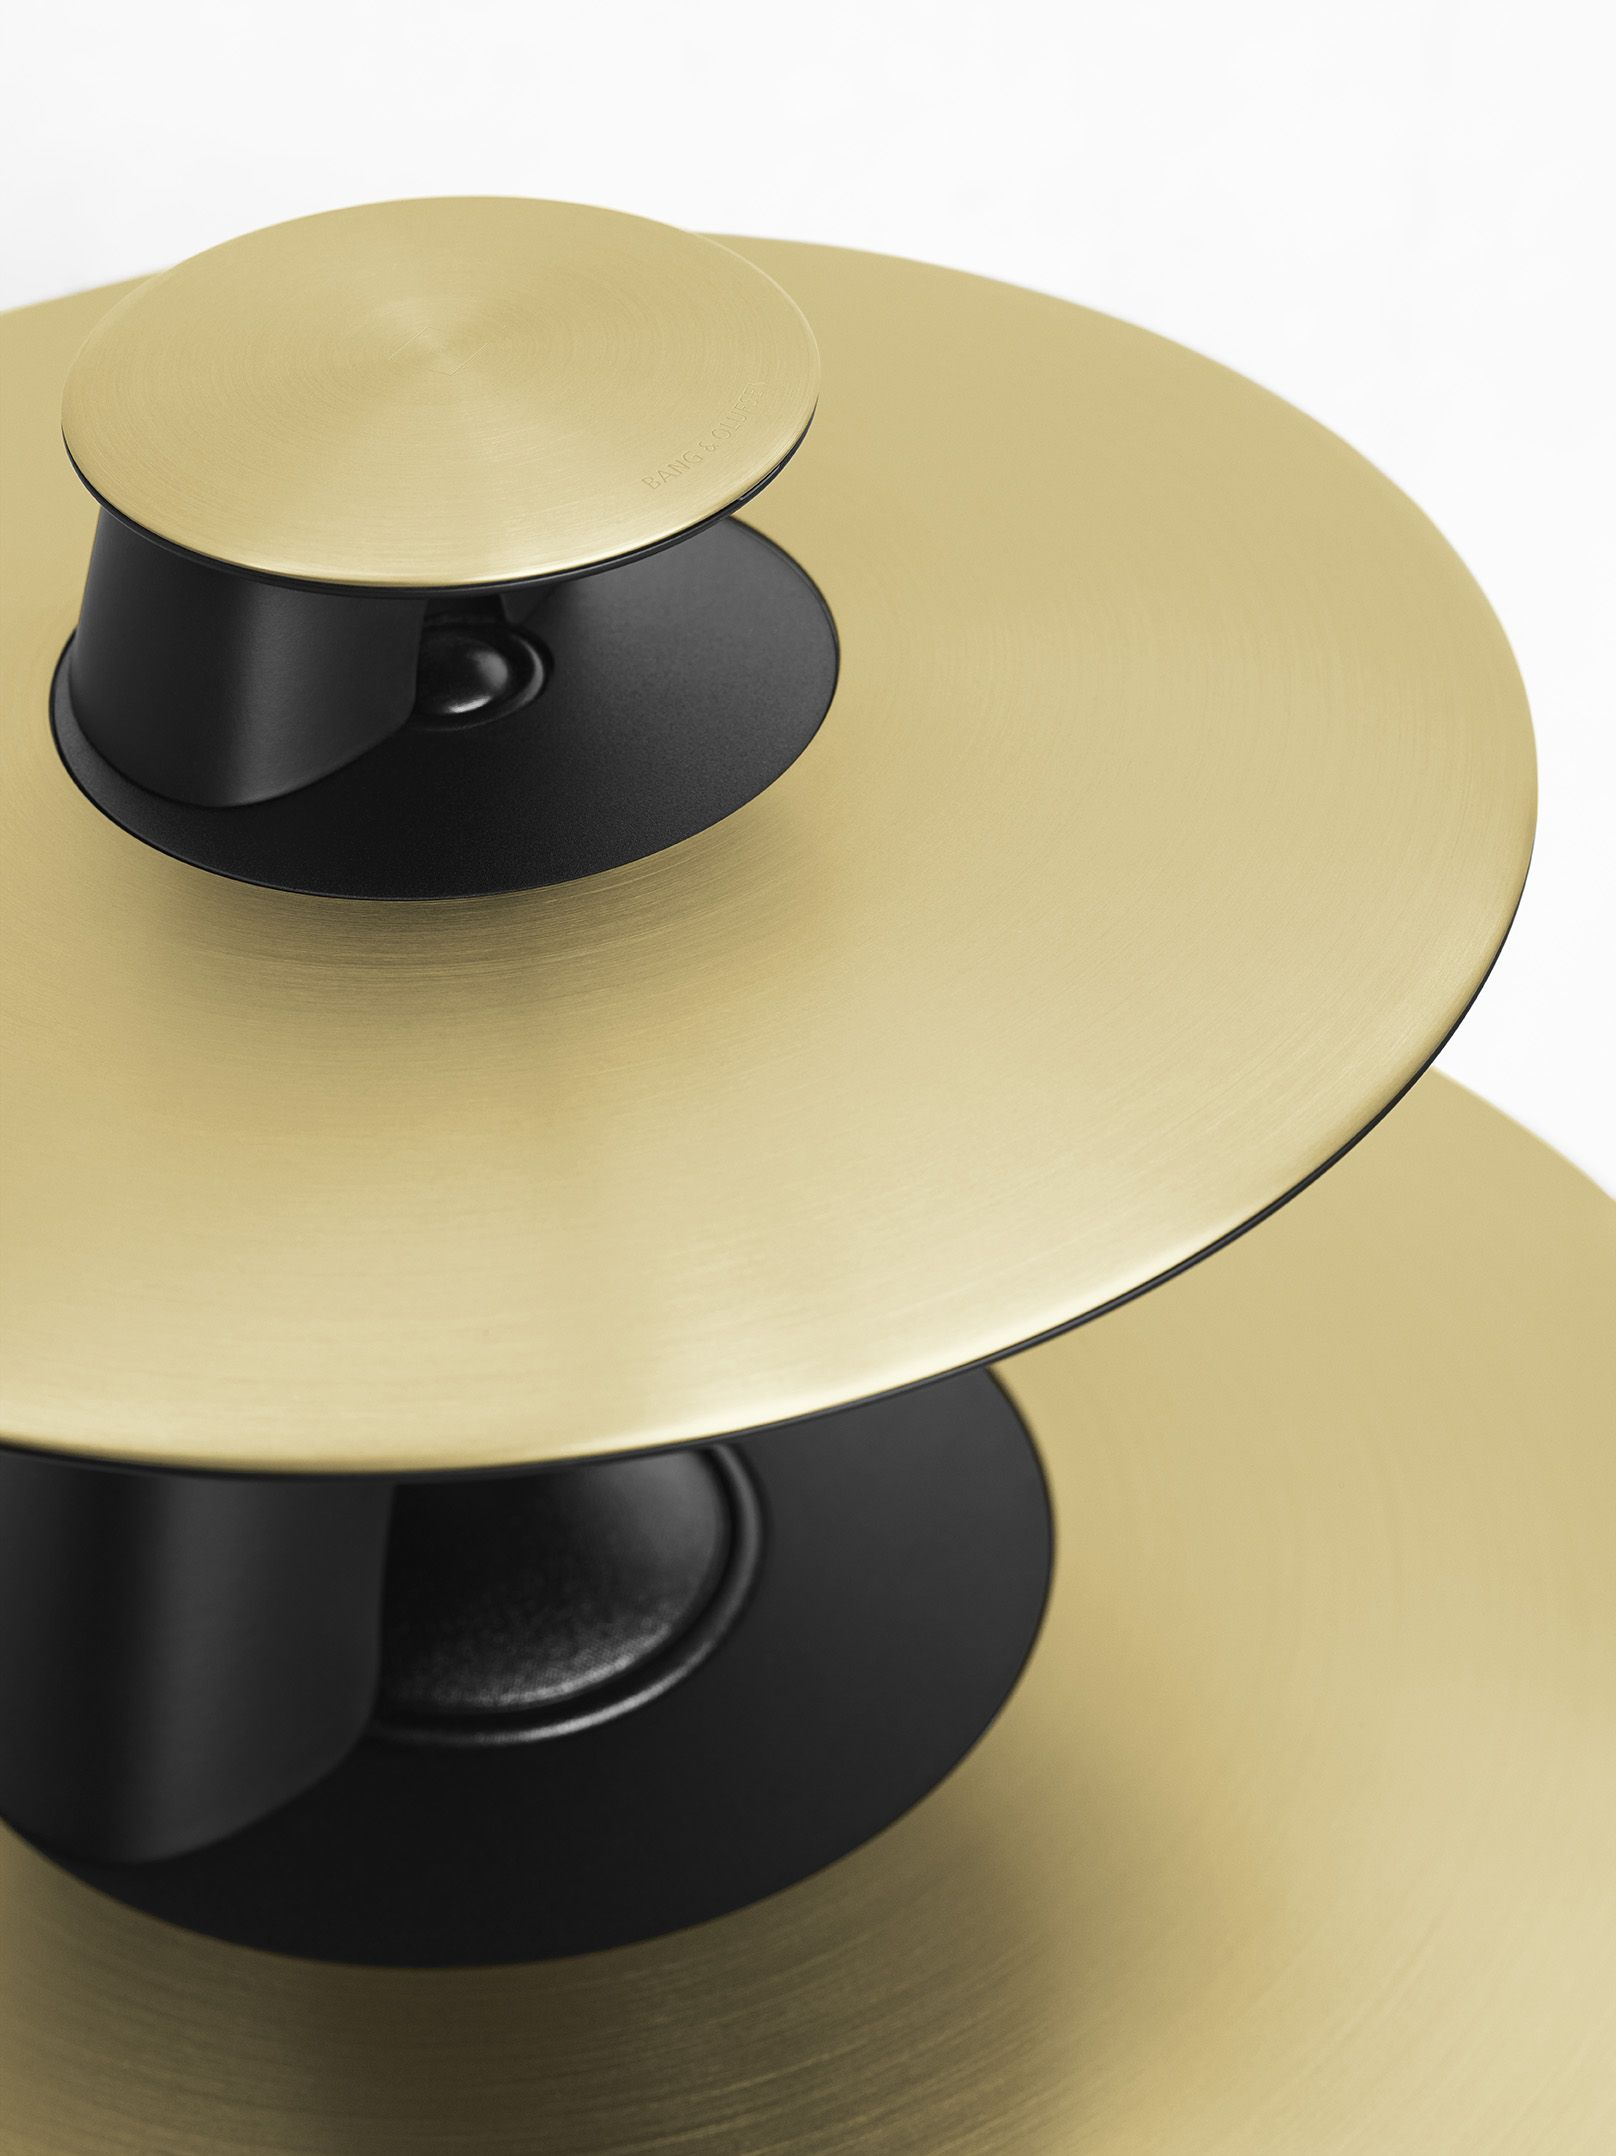 Bang amp olufsen table stand for beolab 7 4 - Discover The Newest Collection From Bang Olufsen The Cool Modern Collection In Brass Color Is Ideal For Bringing Warmth Into The Contemporary Home